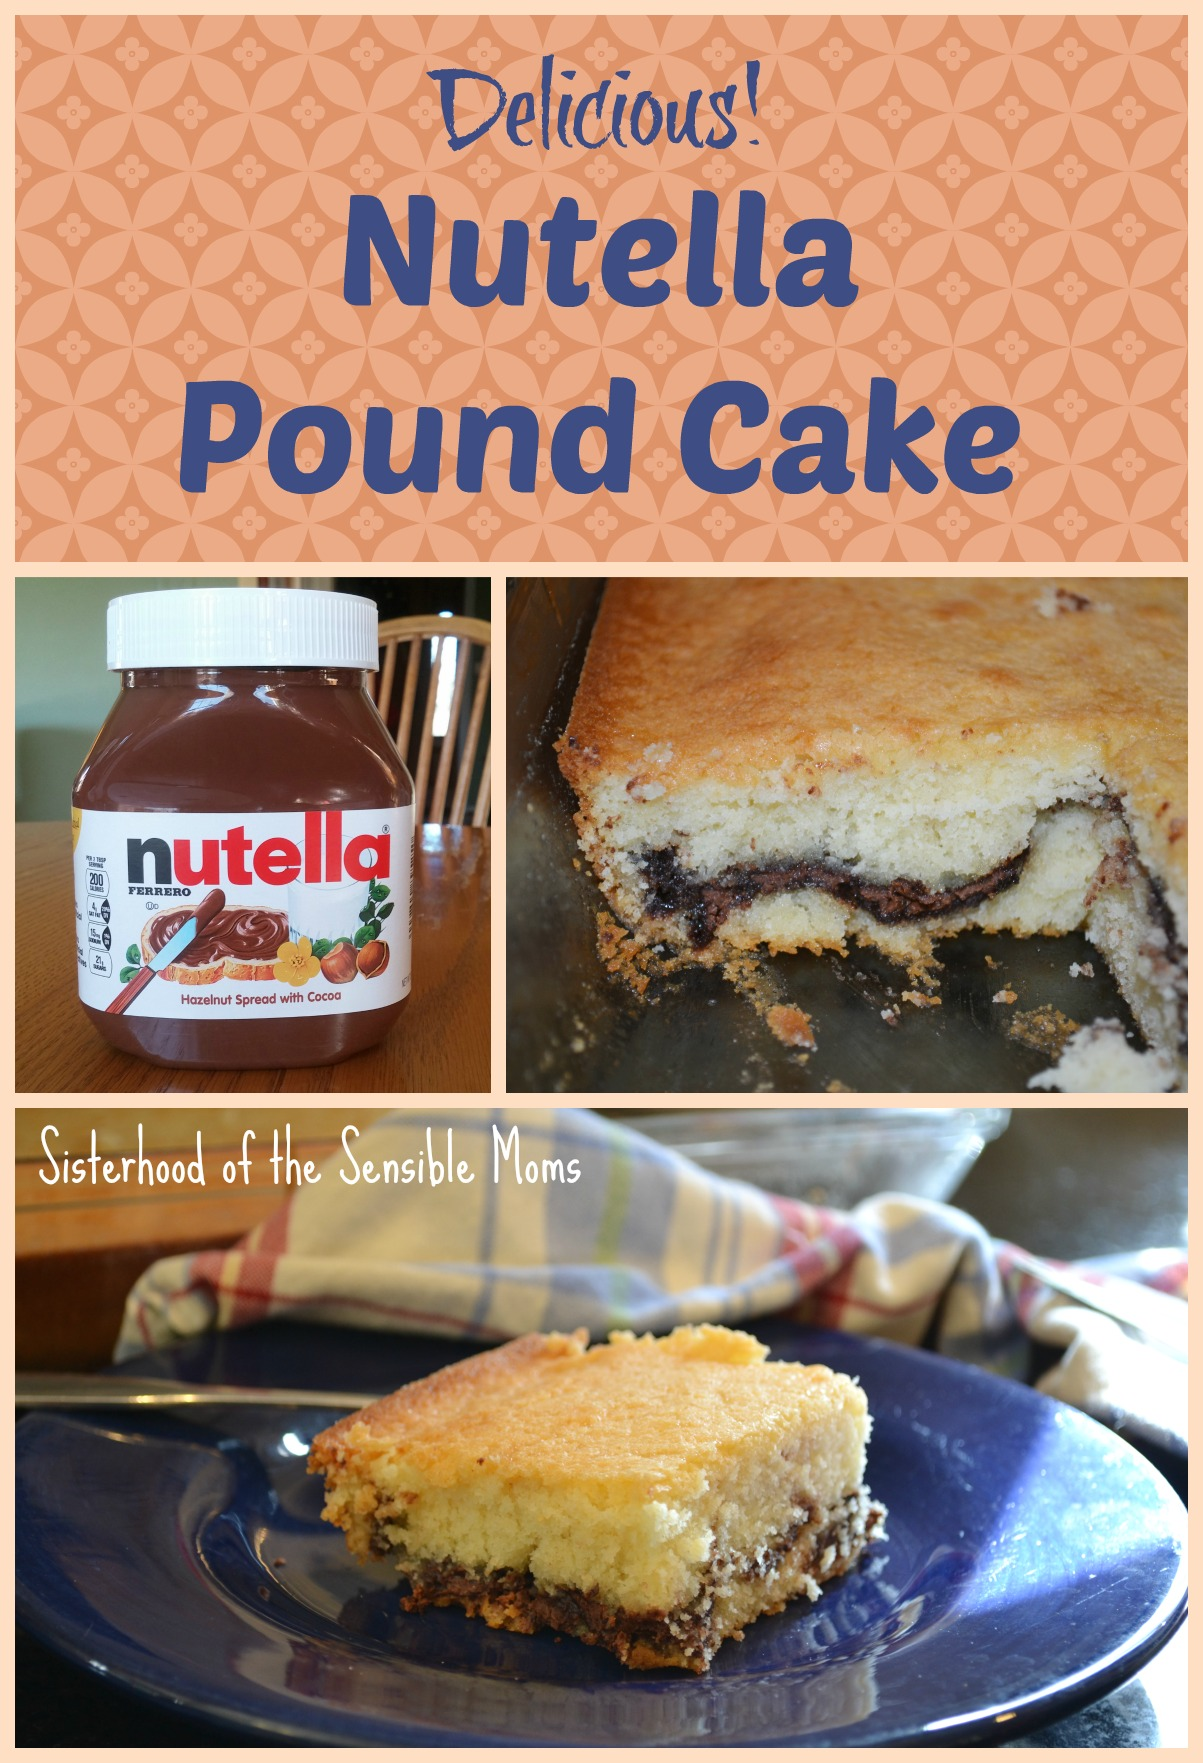 Nutella Pound Cake | A very delicious dessert recipe that is easy to make. Sisterhood of the Sensible Moms